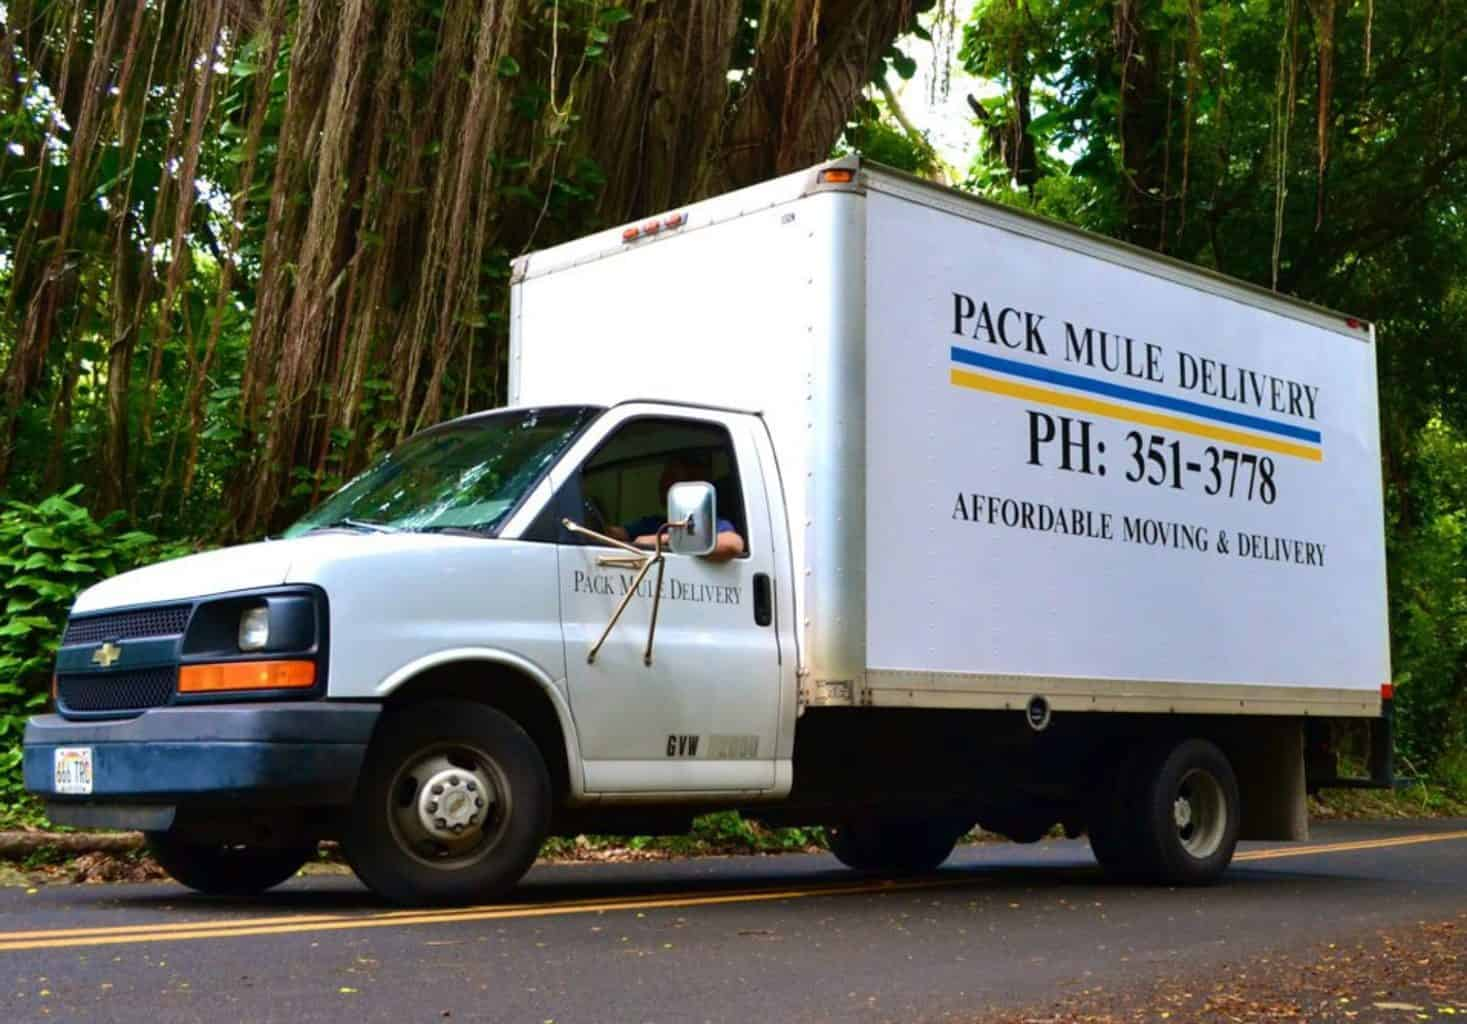 Pack Mule Moving and Delivery | Call Us Today 351-3778